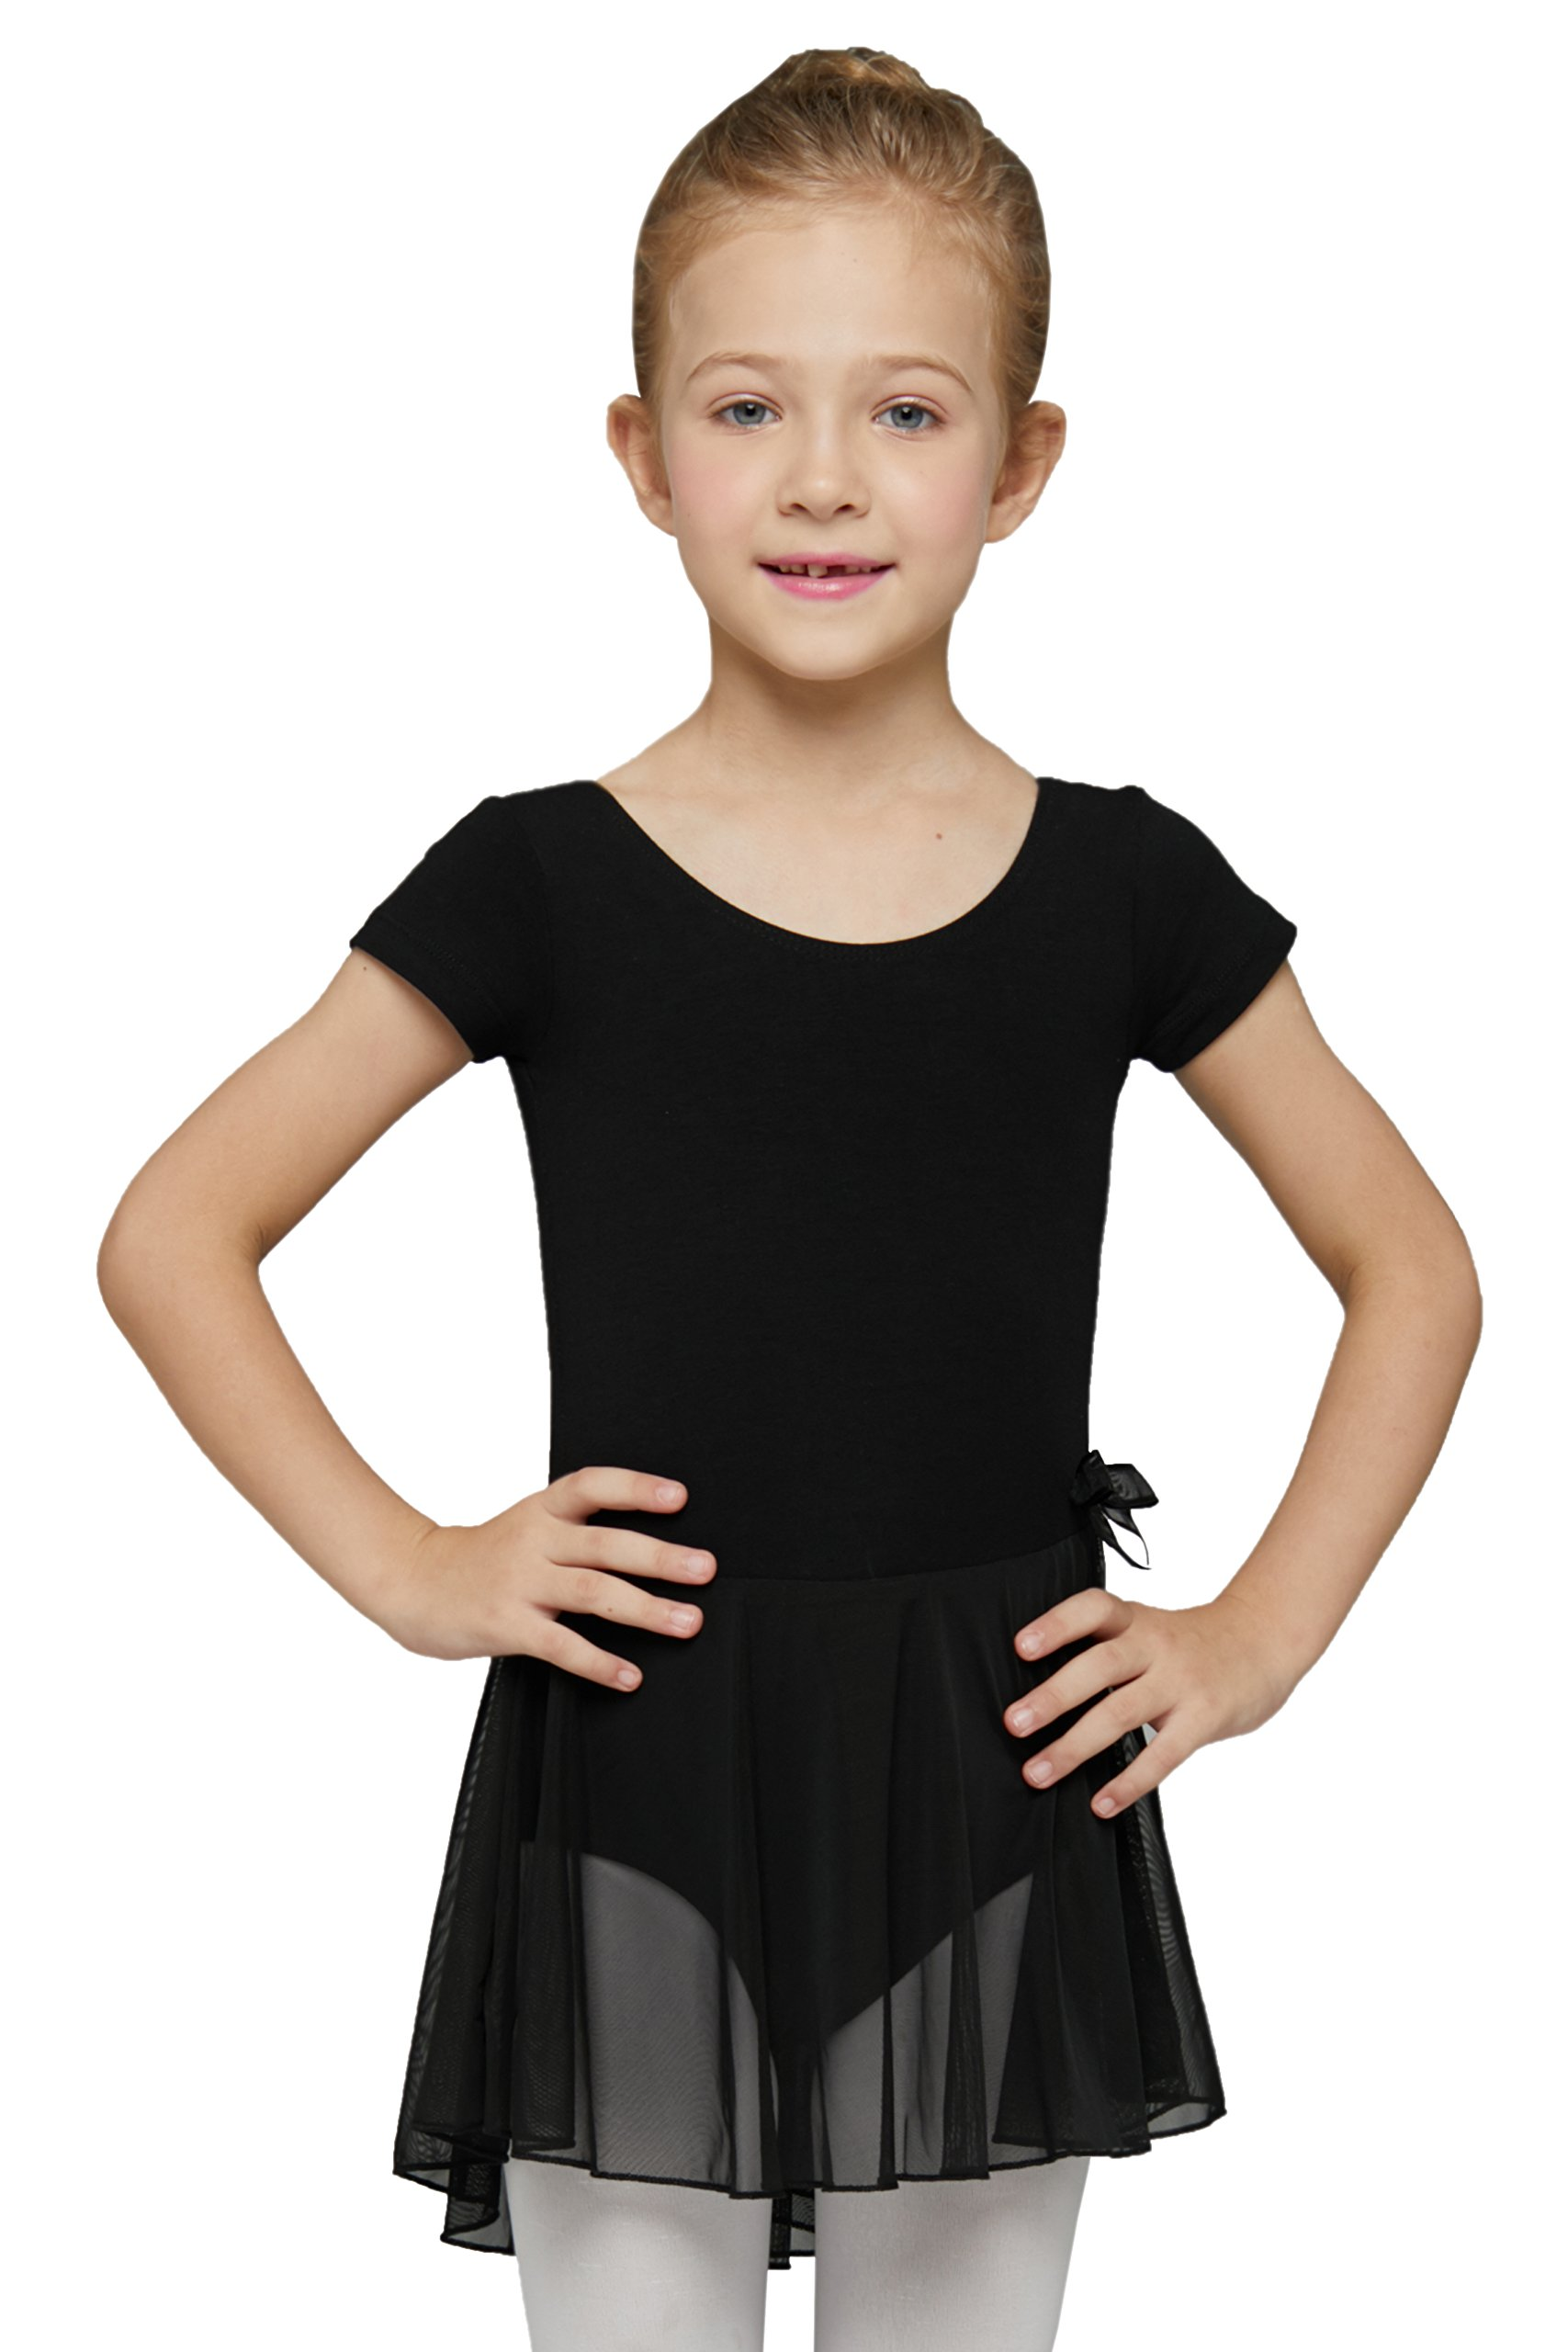 c8a75d1a5 Best Rated in Dance Apparel   Helpful Customer Reviews - Amazon.com